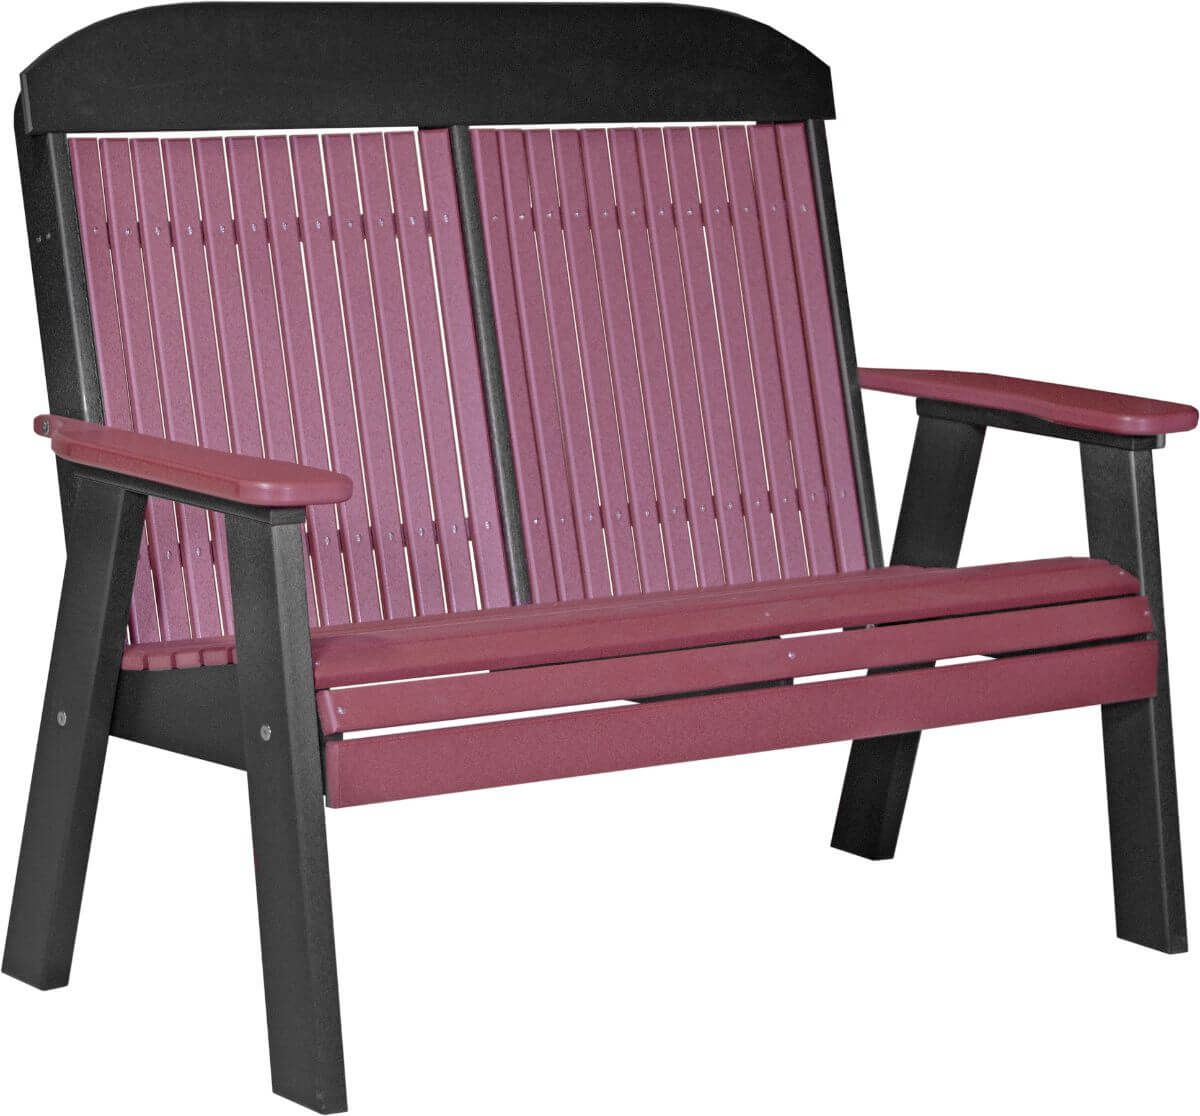 Cherrywood and Black Stockton Patio Bench